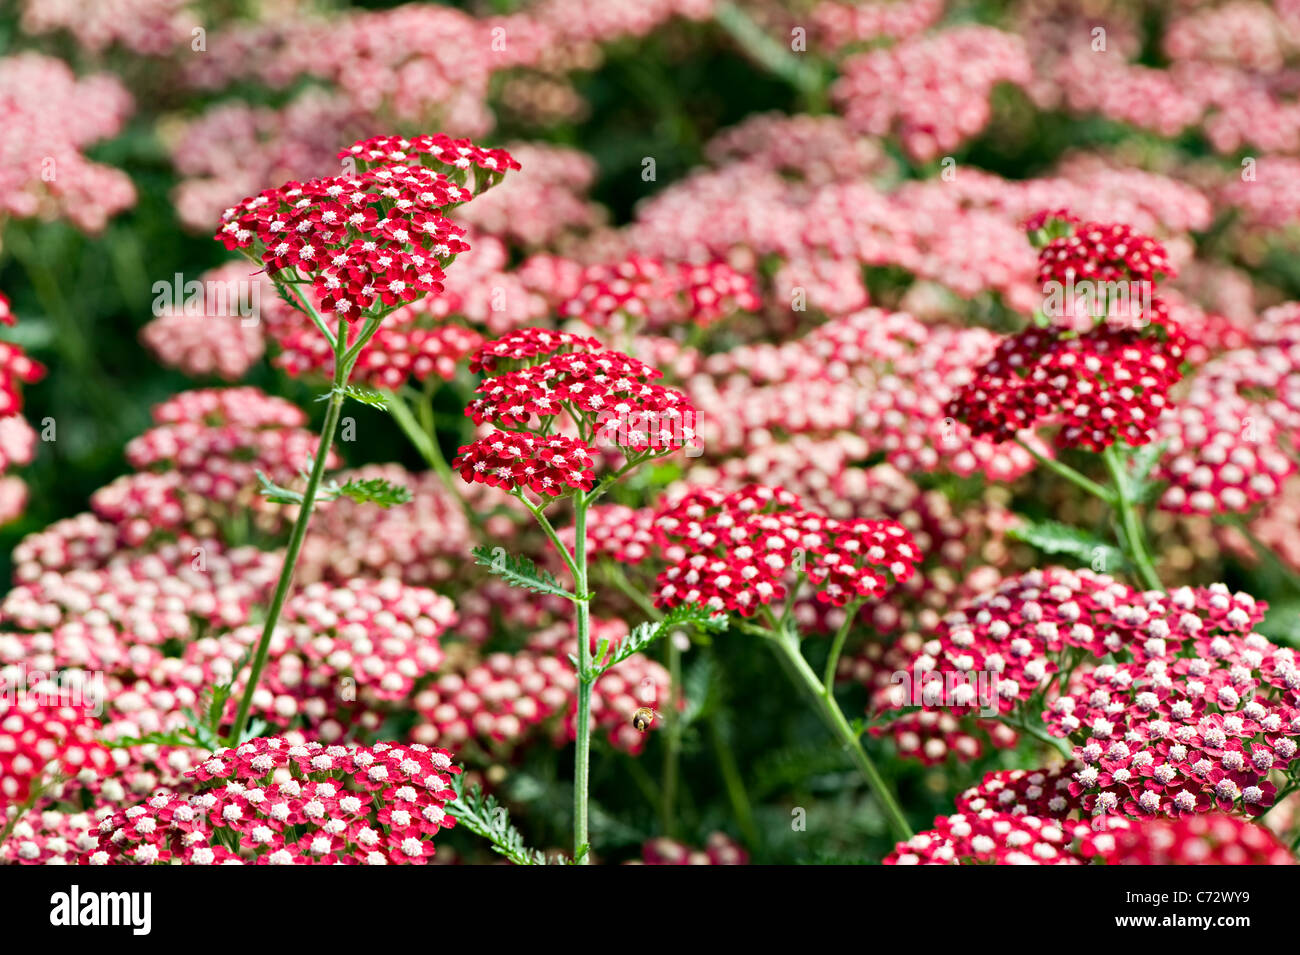 Close-up image of the vibrant summer flowering red Achillea Millefolium 'Peggy Sue' Flowers also known as - Stock Image